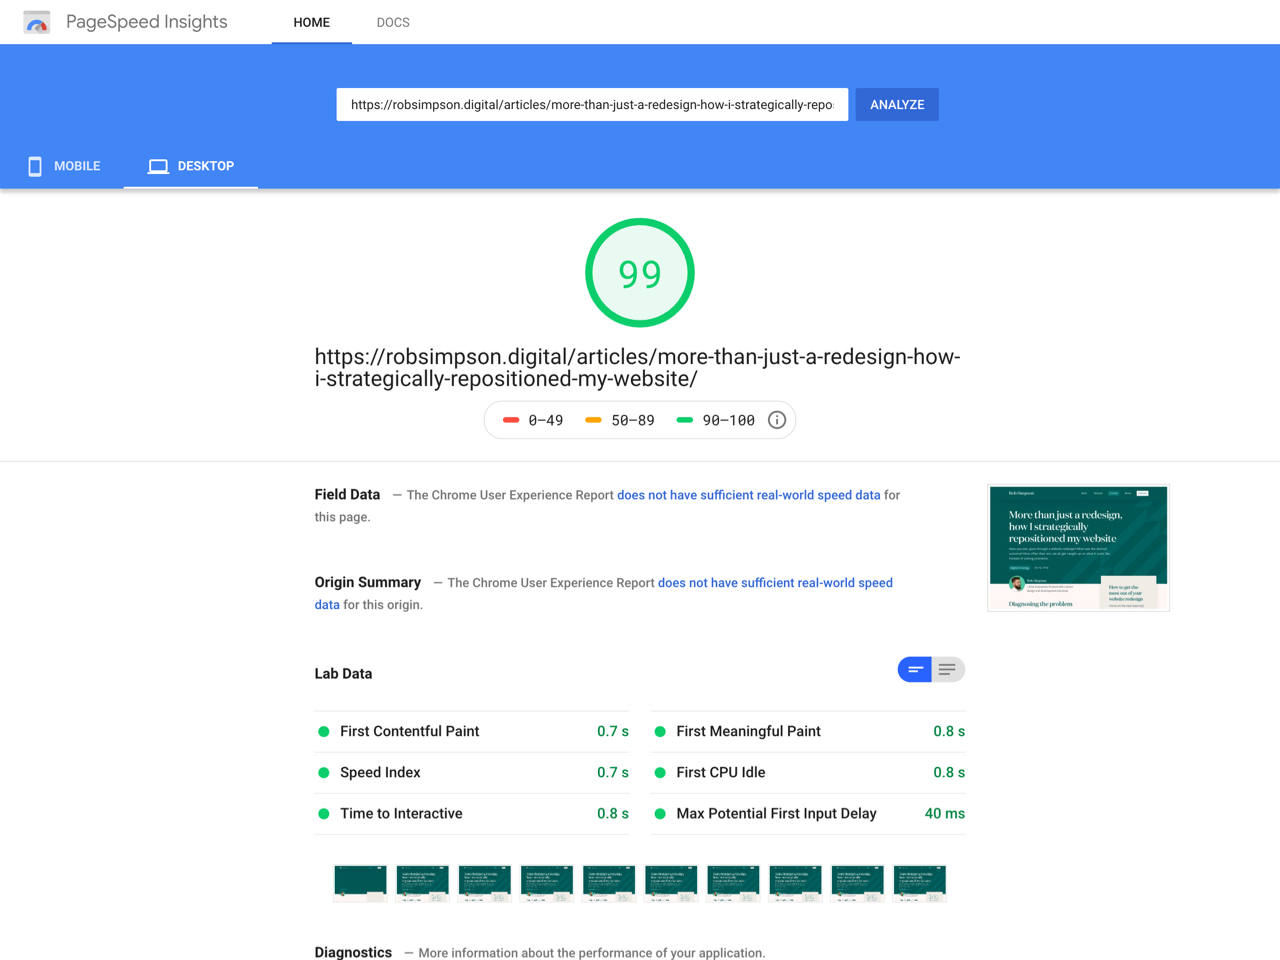 Google page speed performance results for robsimpson.digital